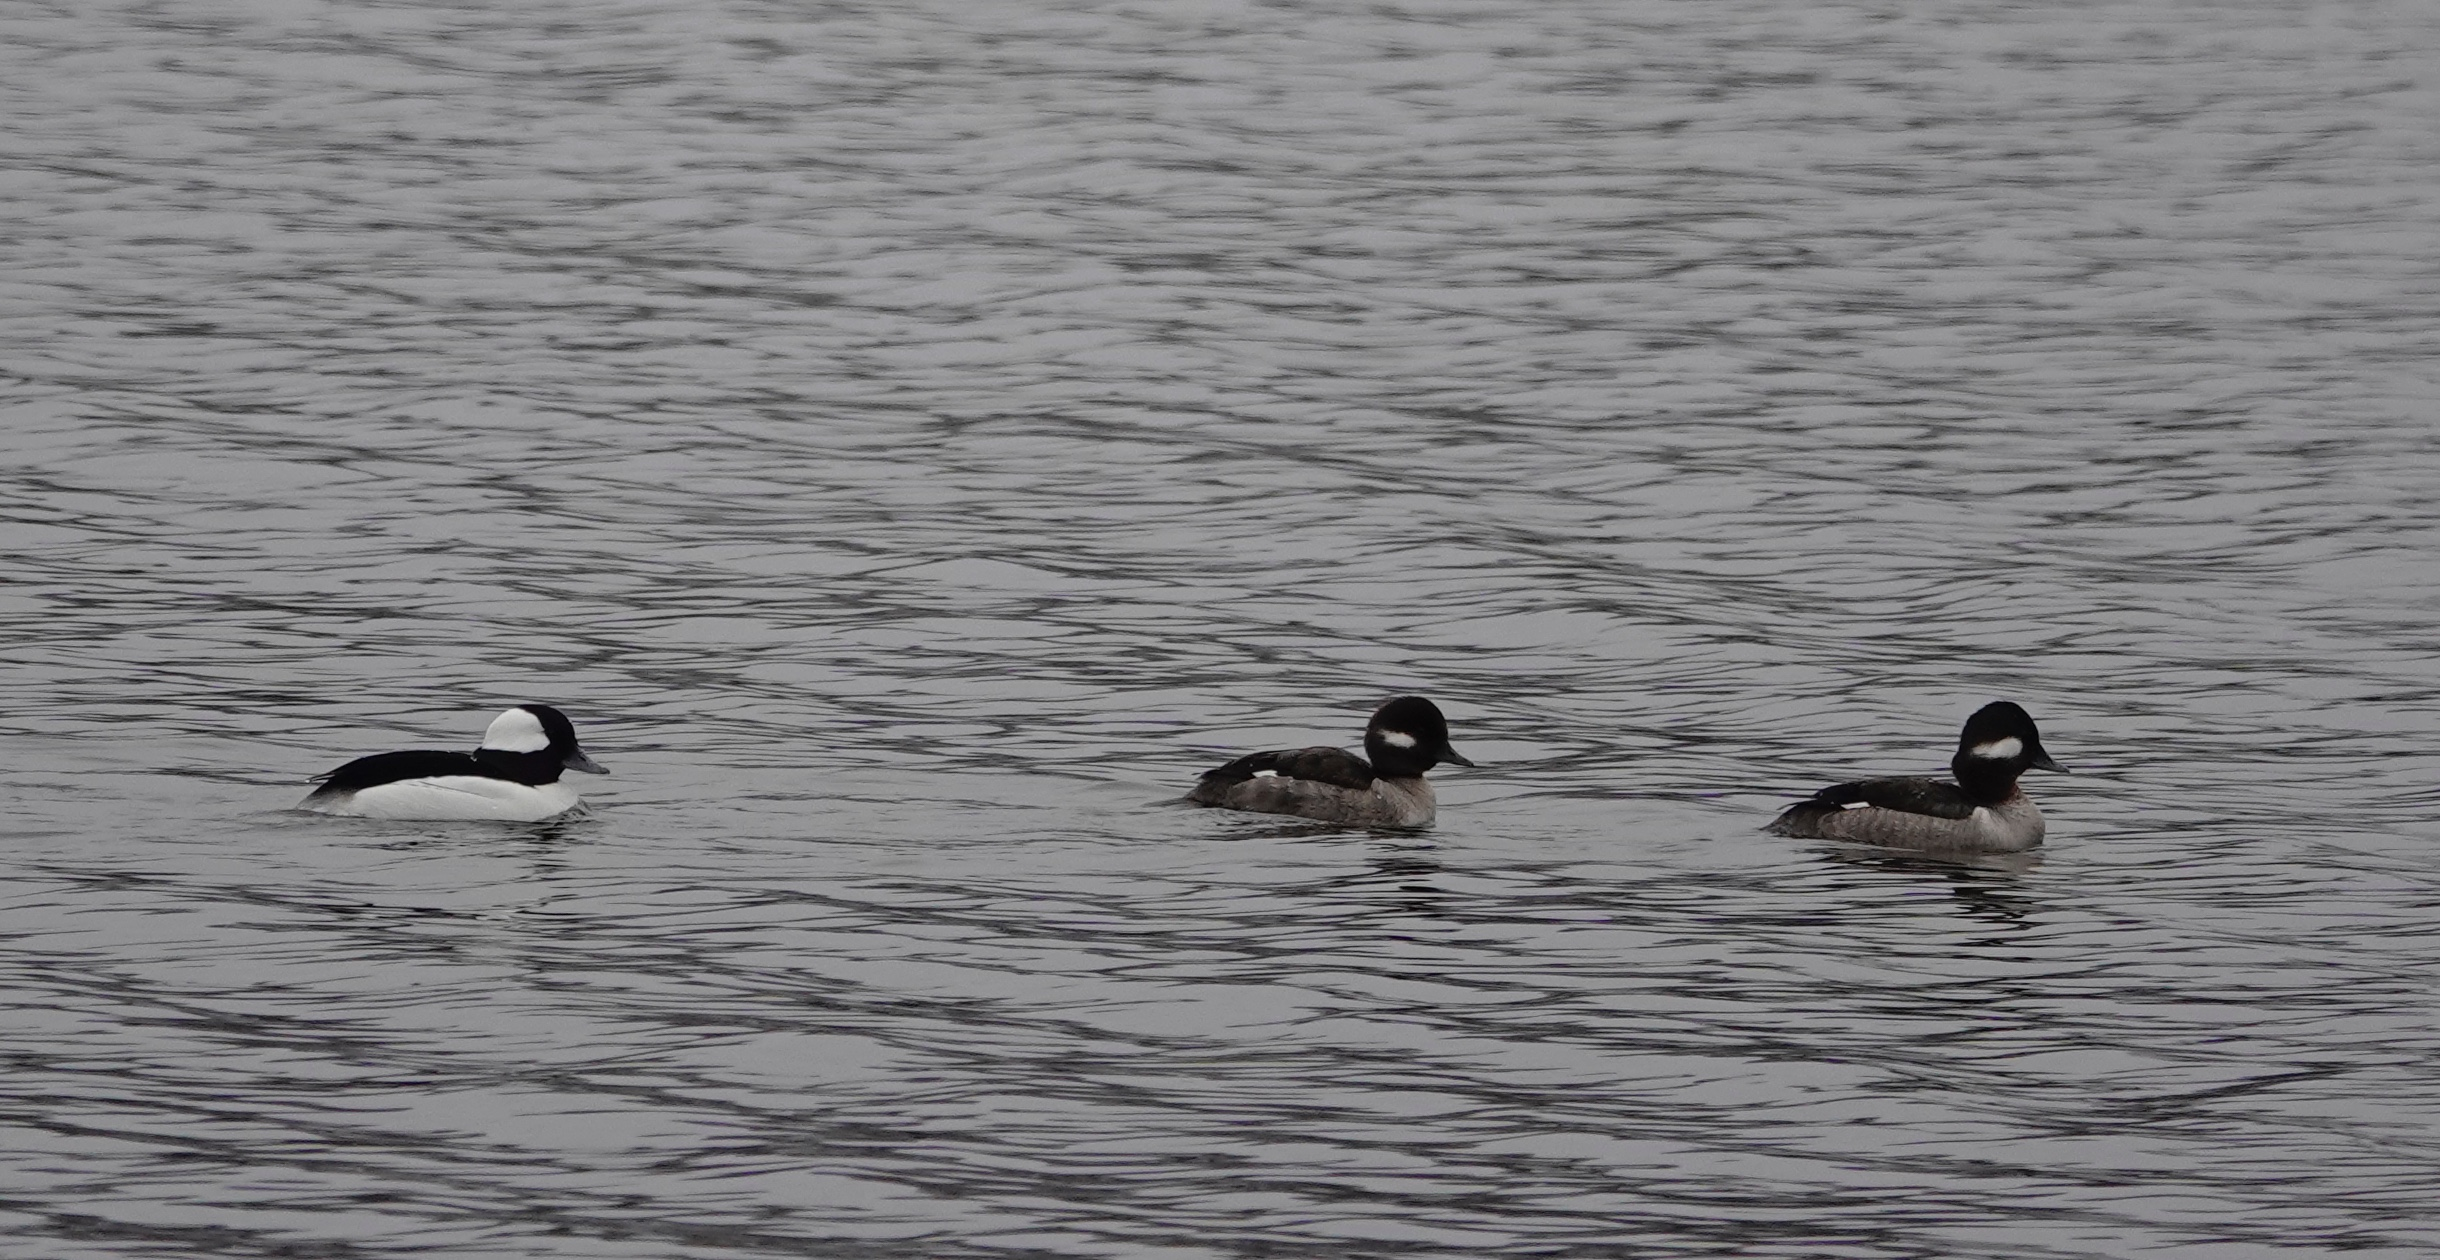 Buffleheads, compact divers and cavity-nesting ducks, bounce upon the water.